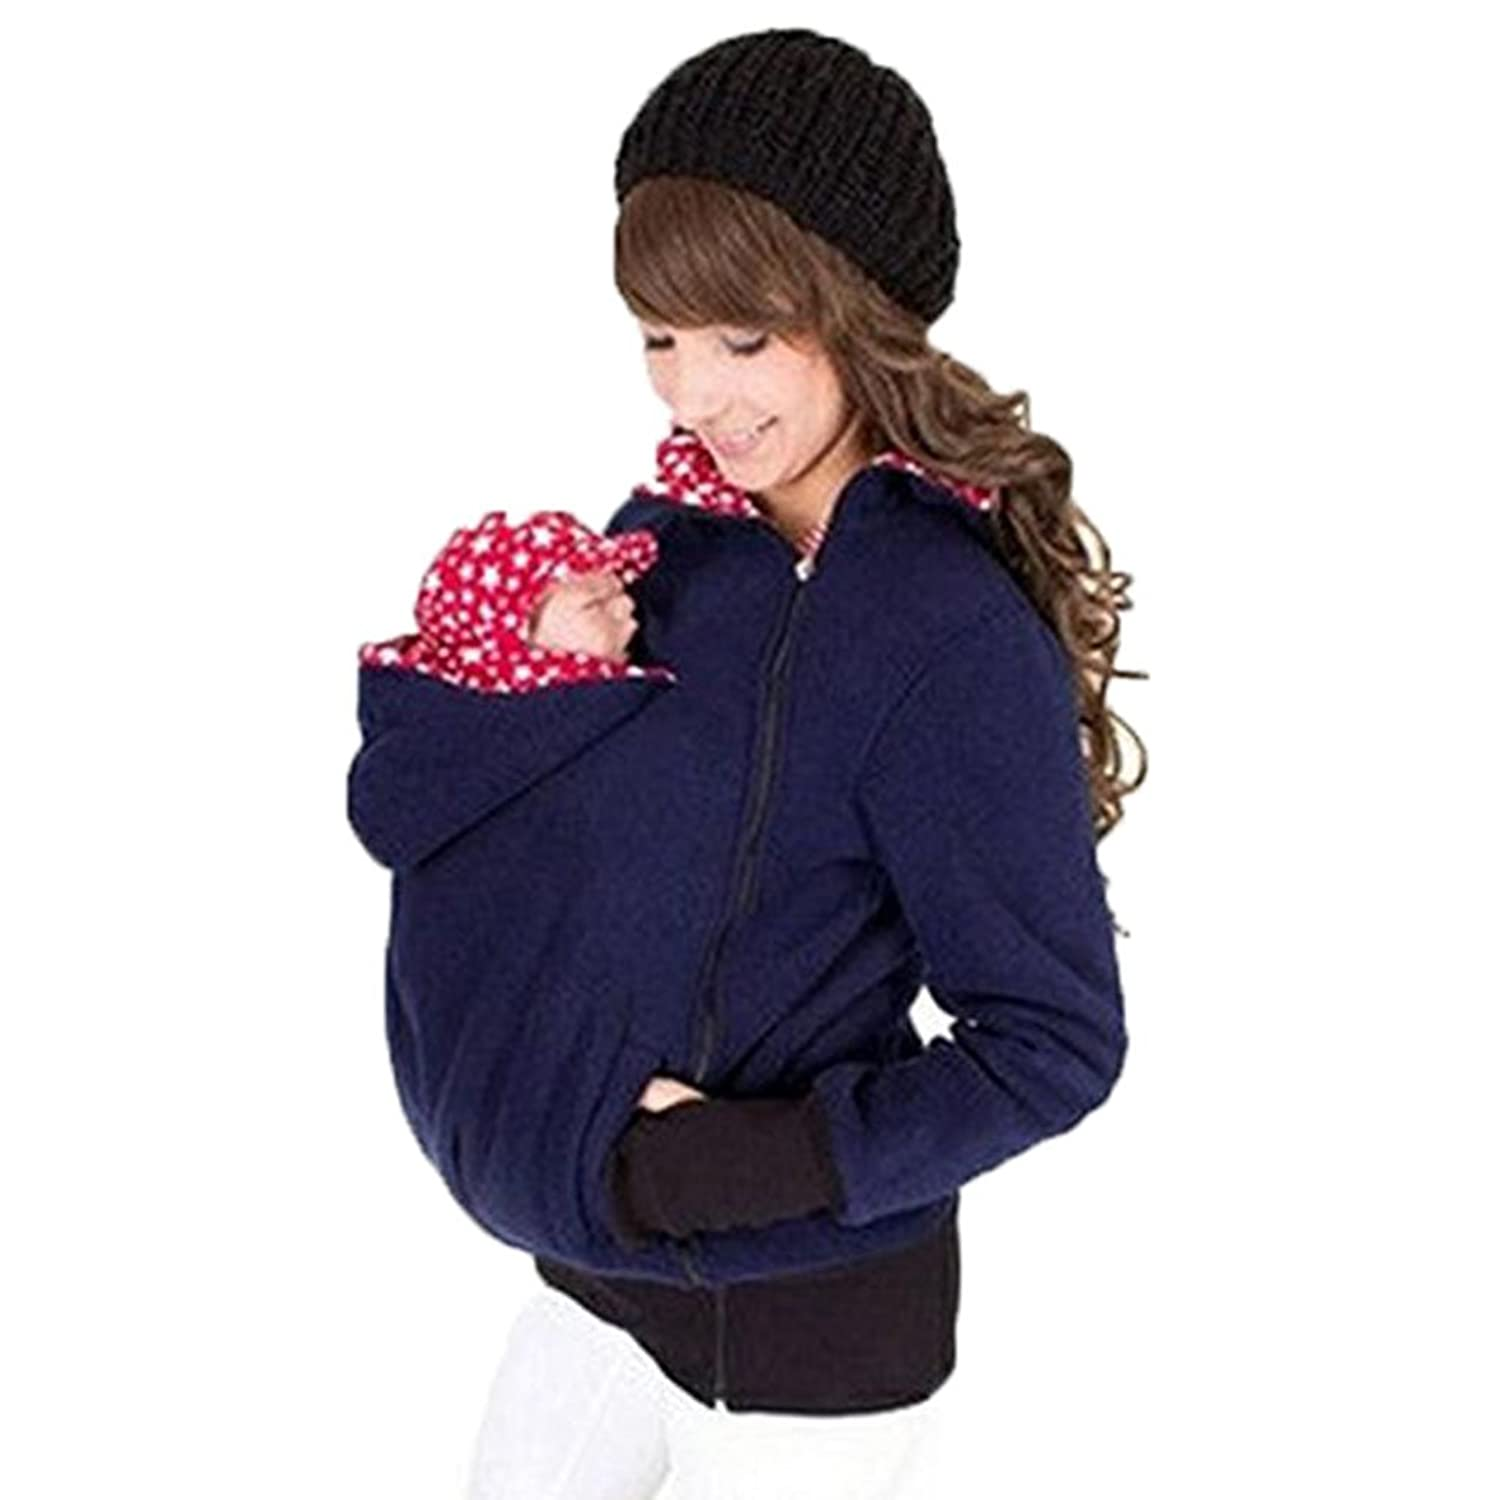 hibote Maternity Hooded Sweatshirt for Baby Carrier 3 in 1 Mulfunctional Women's Cardigan Outerwear